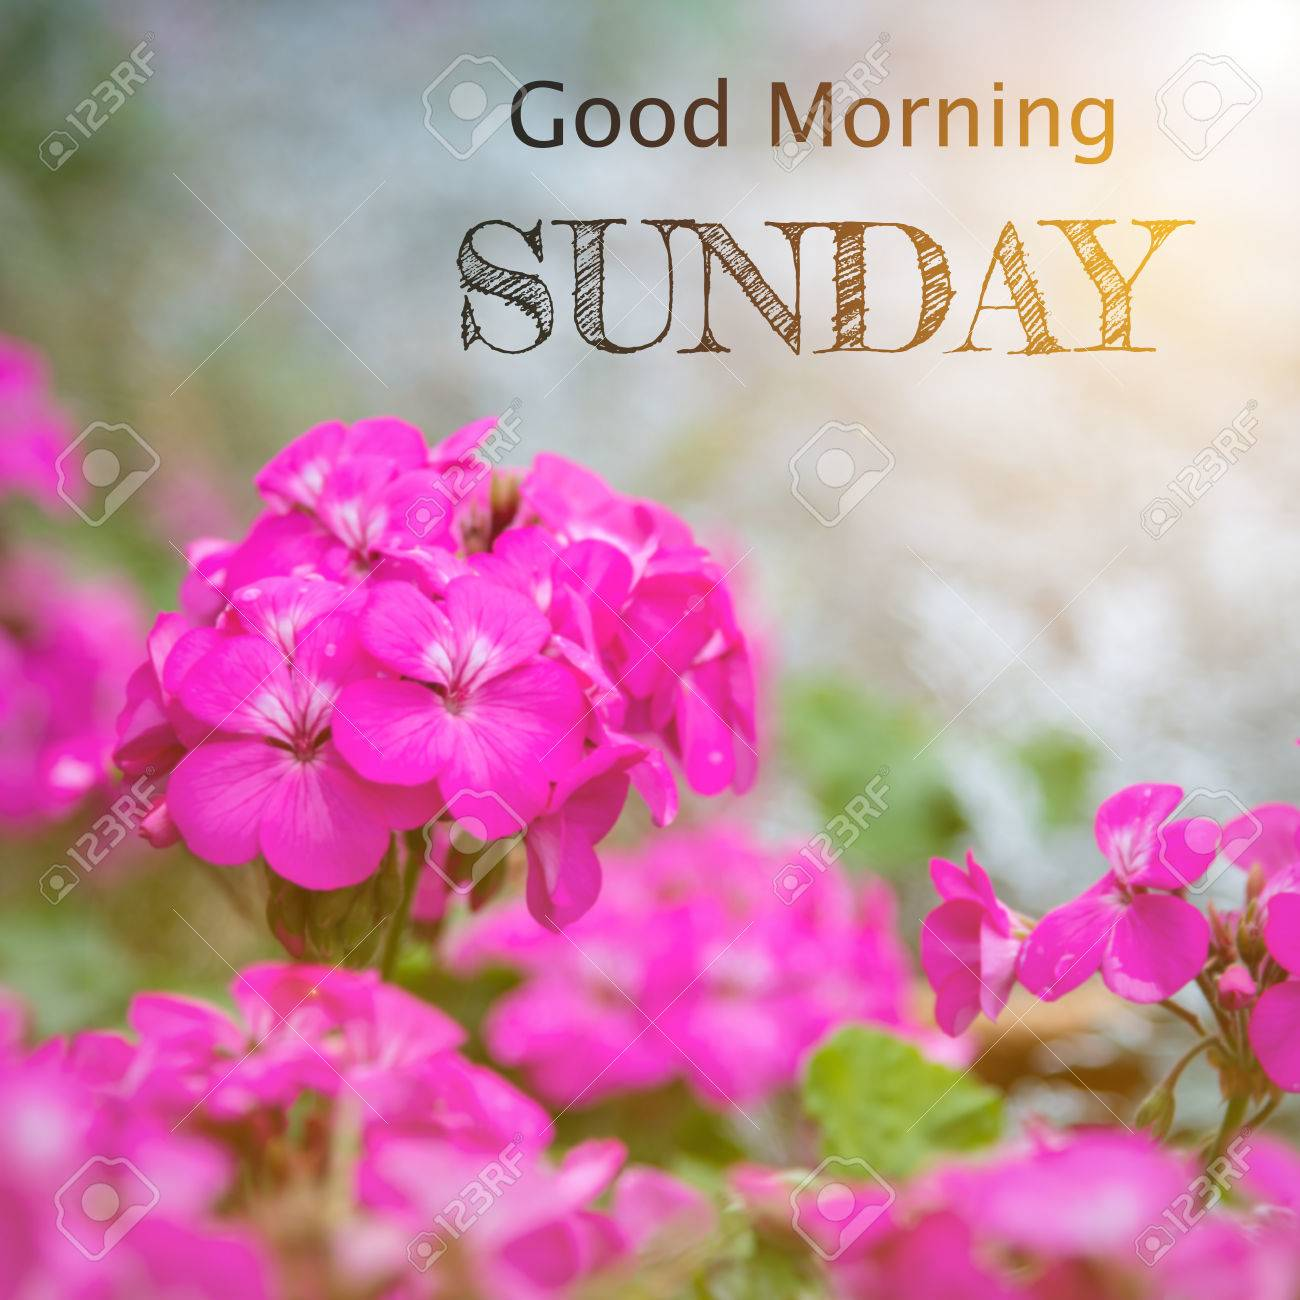 Good Morning Sunday Stock Photo Picture And Royalty Free Image